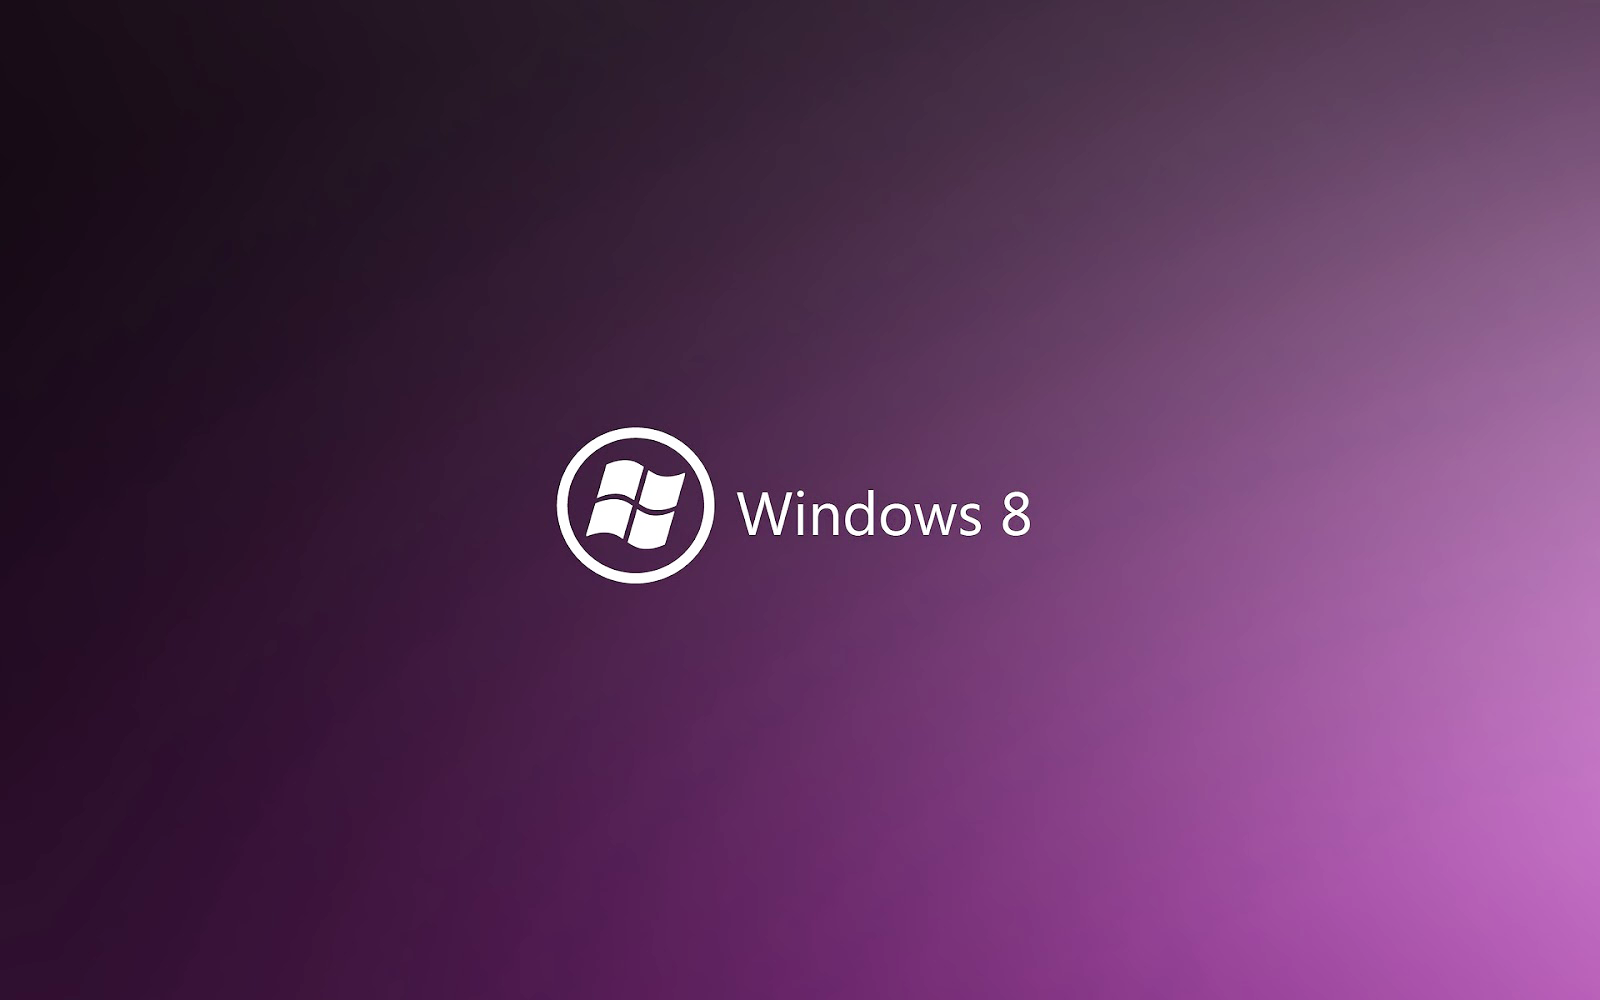 Lila Windows 8 desktopmotive